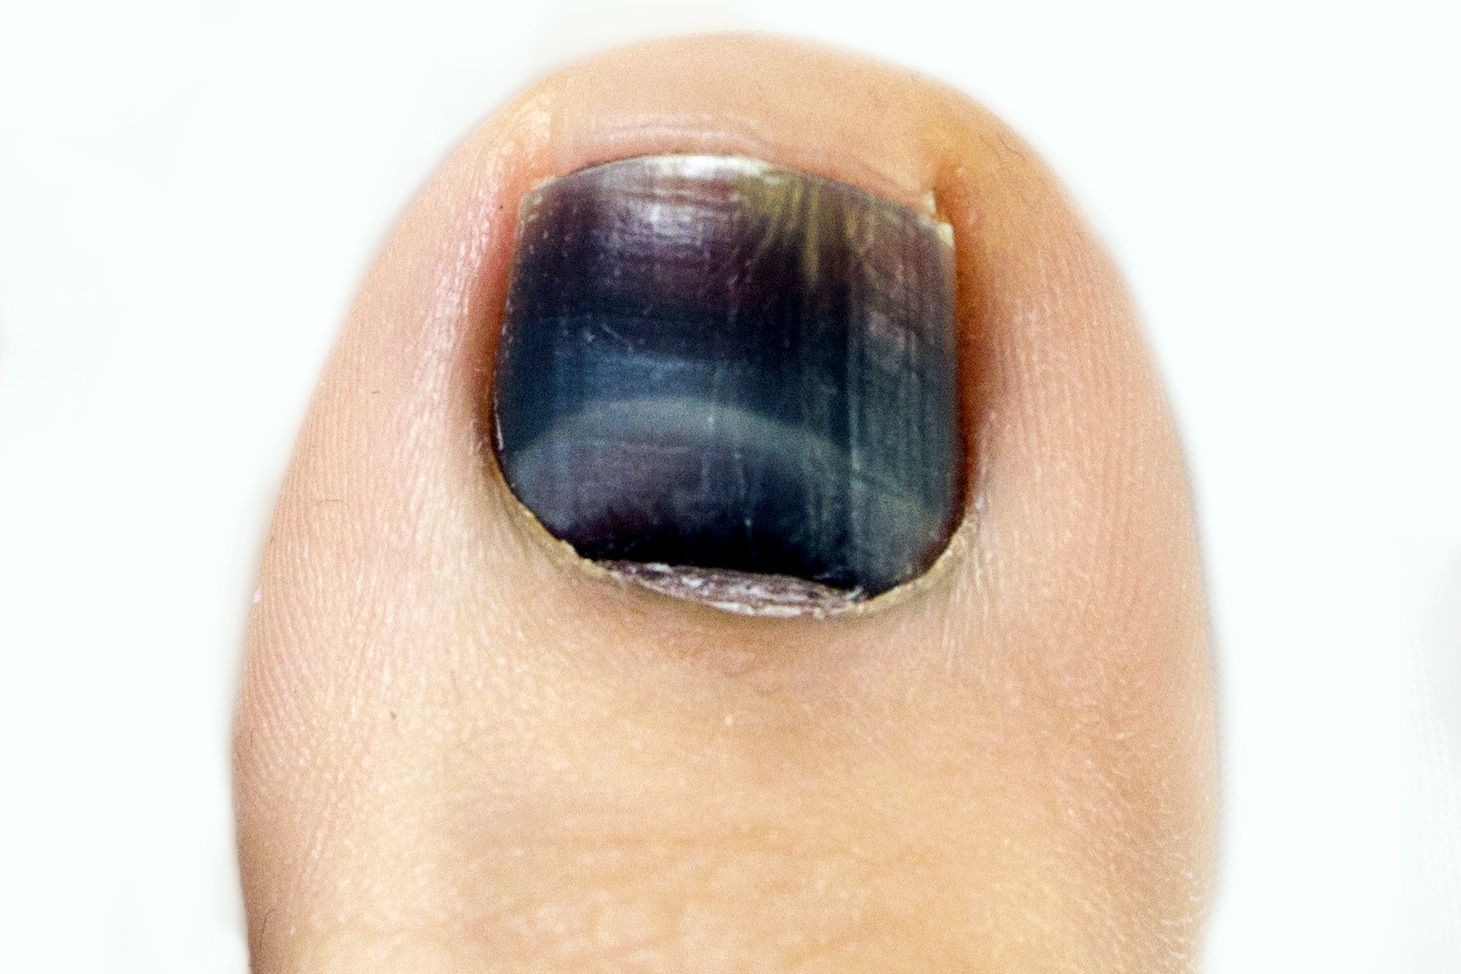 Black Toenail From Running or Walking